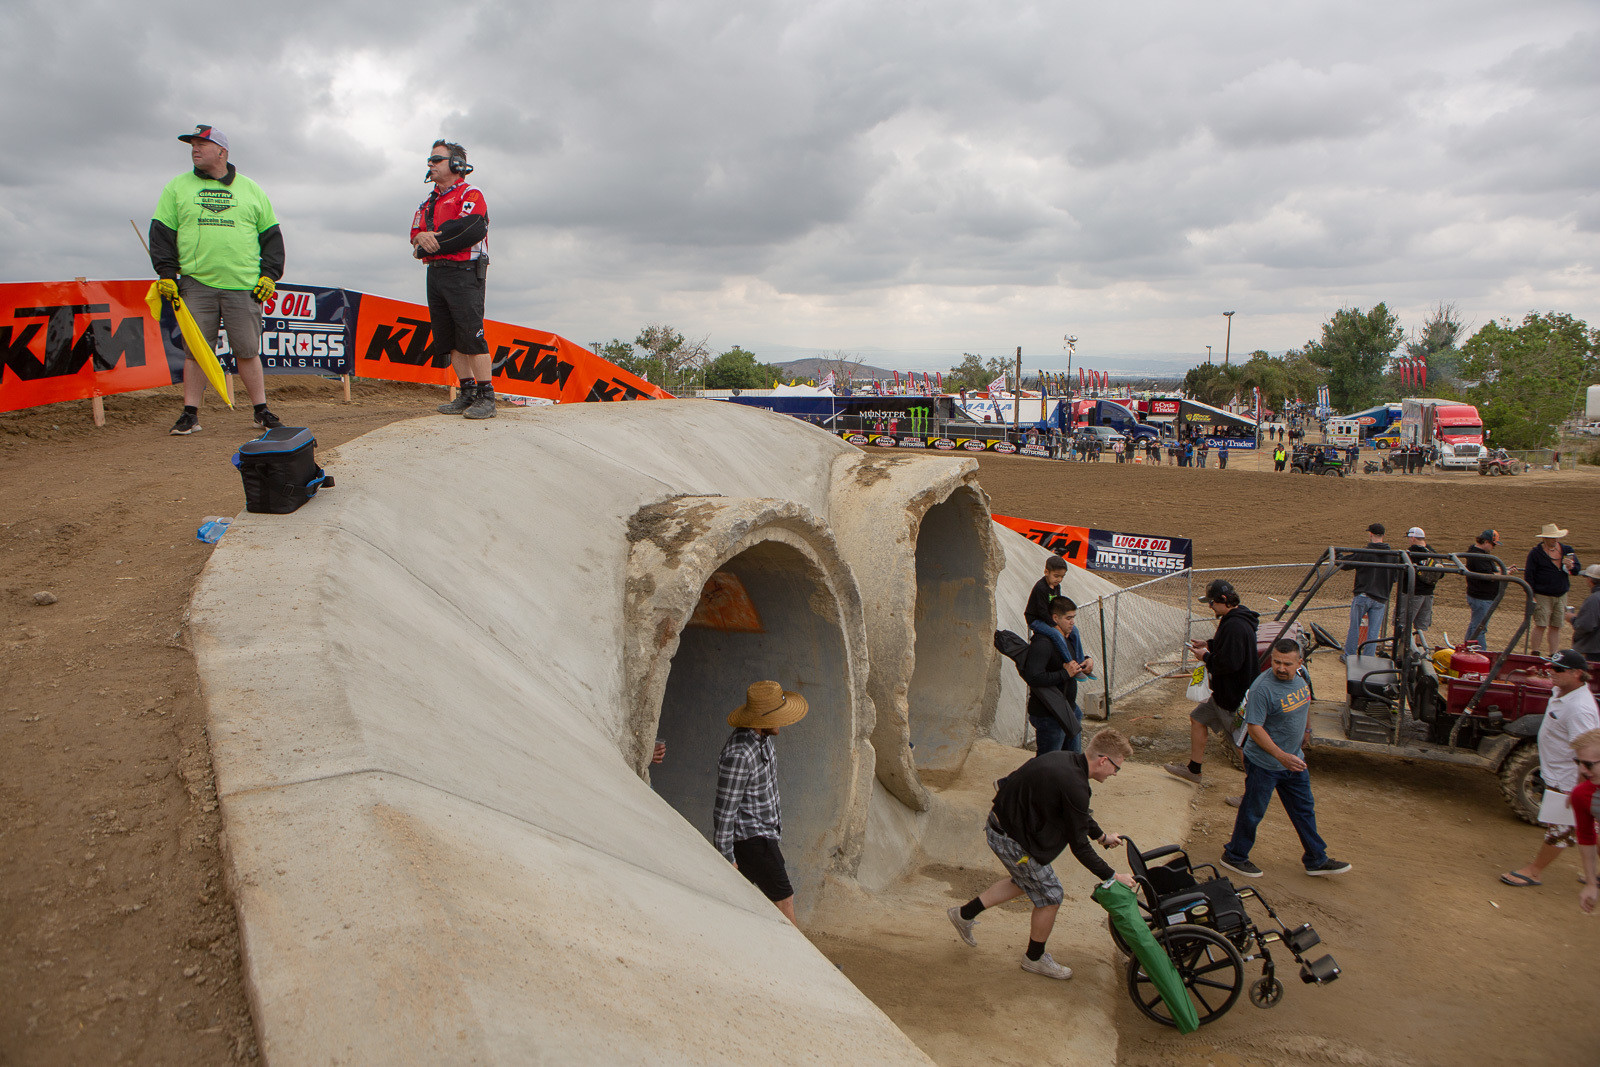 Glen Helen made some improvements coming into the event, which was cool to see. We're not sure what was happening with the P.A. system (they had a new supplier for the race), but it was eerily silent before the start of the first moto.